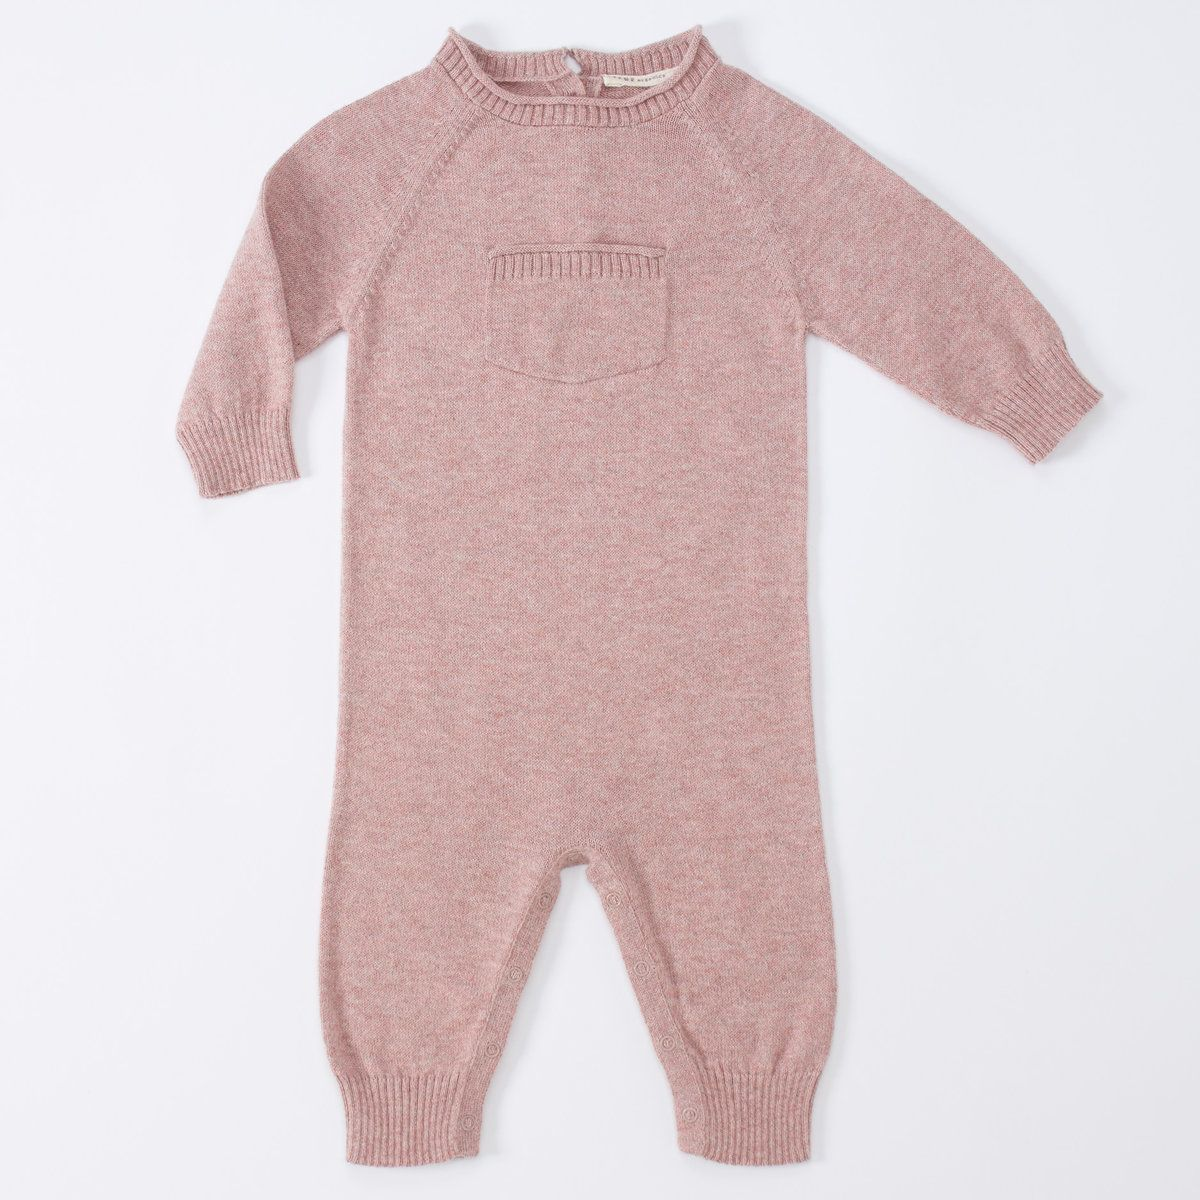 Luxurious Organic Infant and Baby Clothing: onesies : Sweater Coverall w/ Pocket